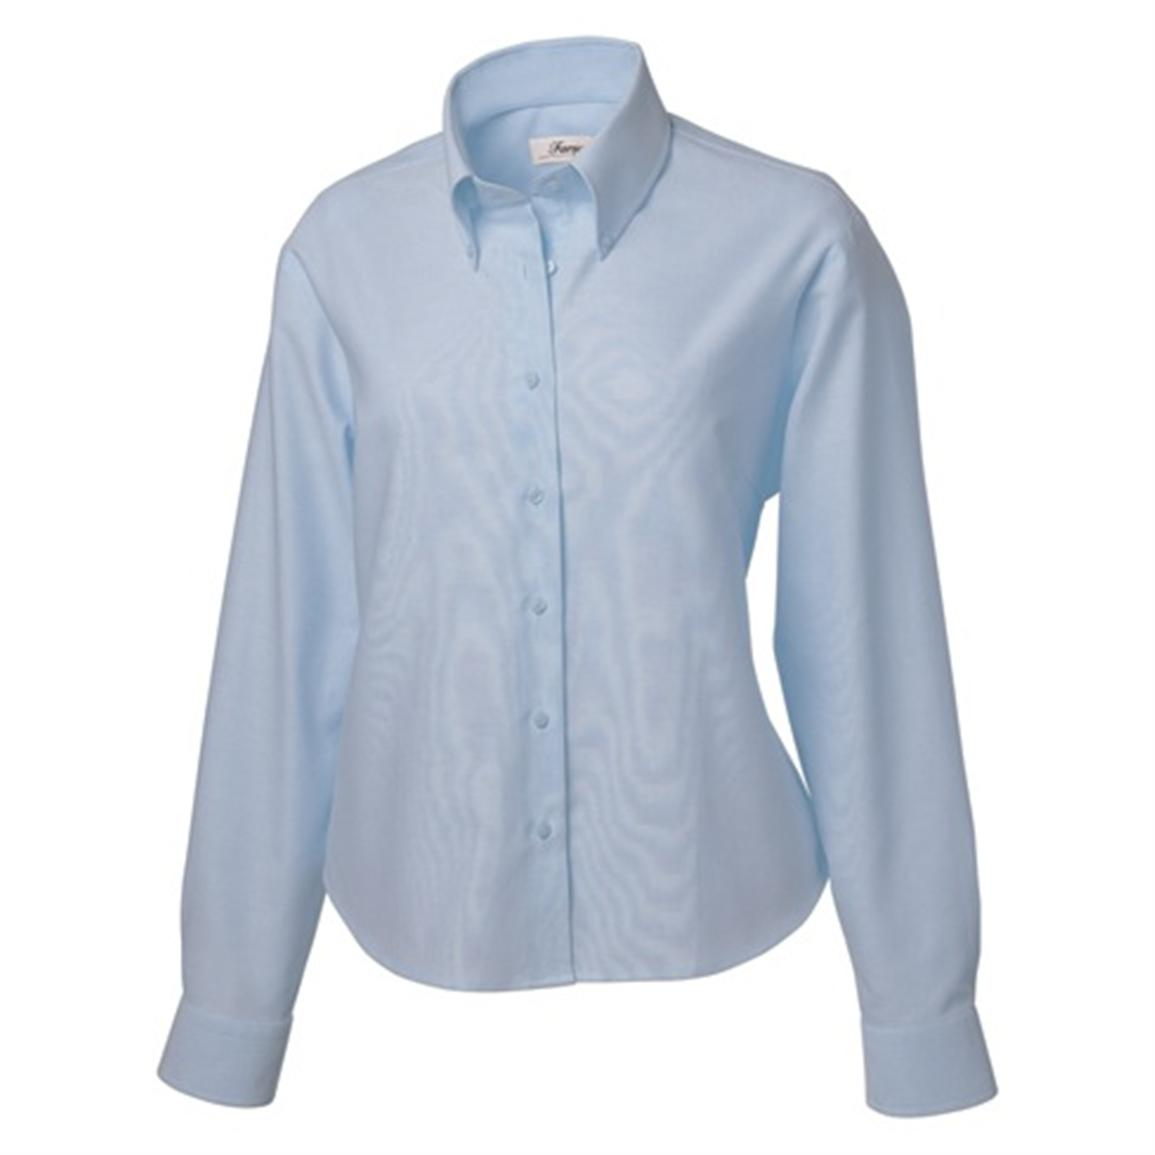 Women's Long-Sleeve Oxford Sport Shirt from Forsyth®, Blue